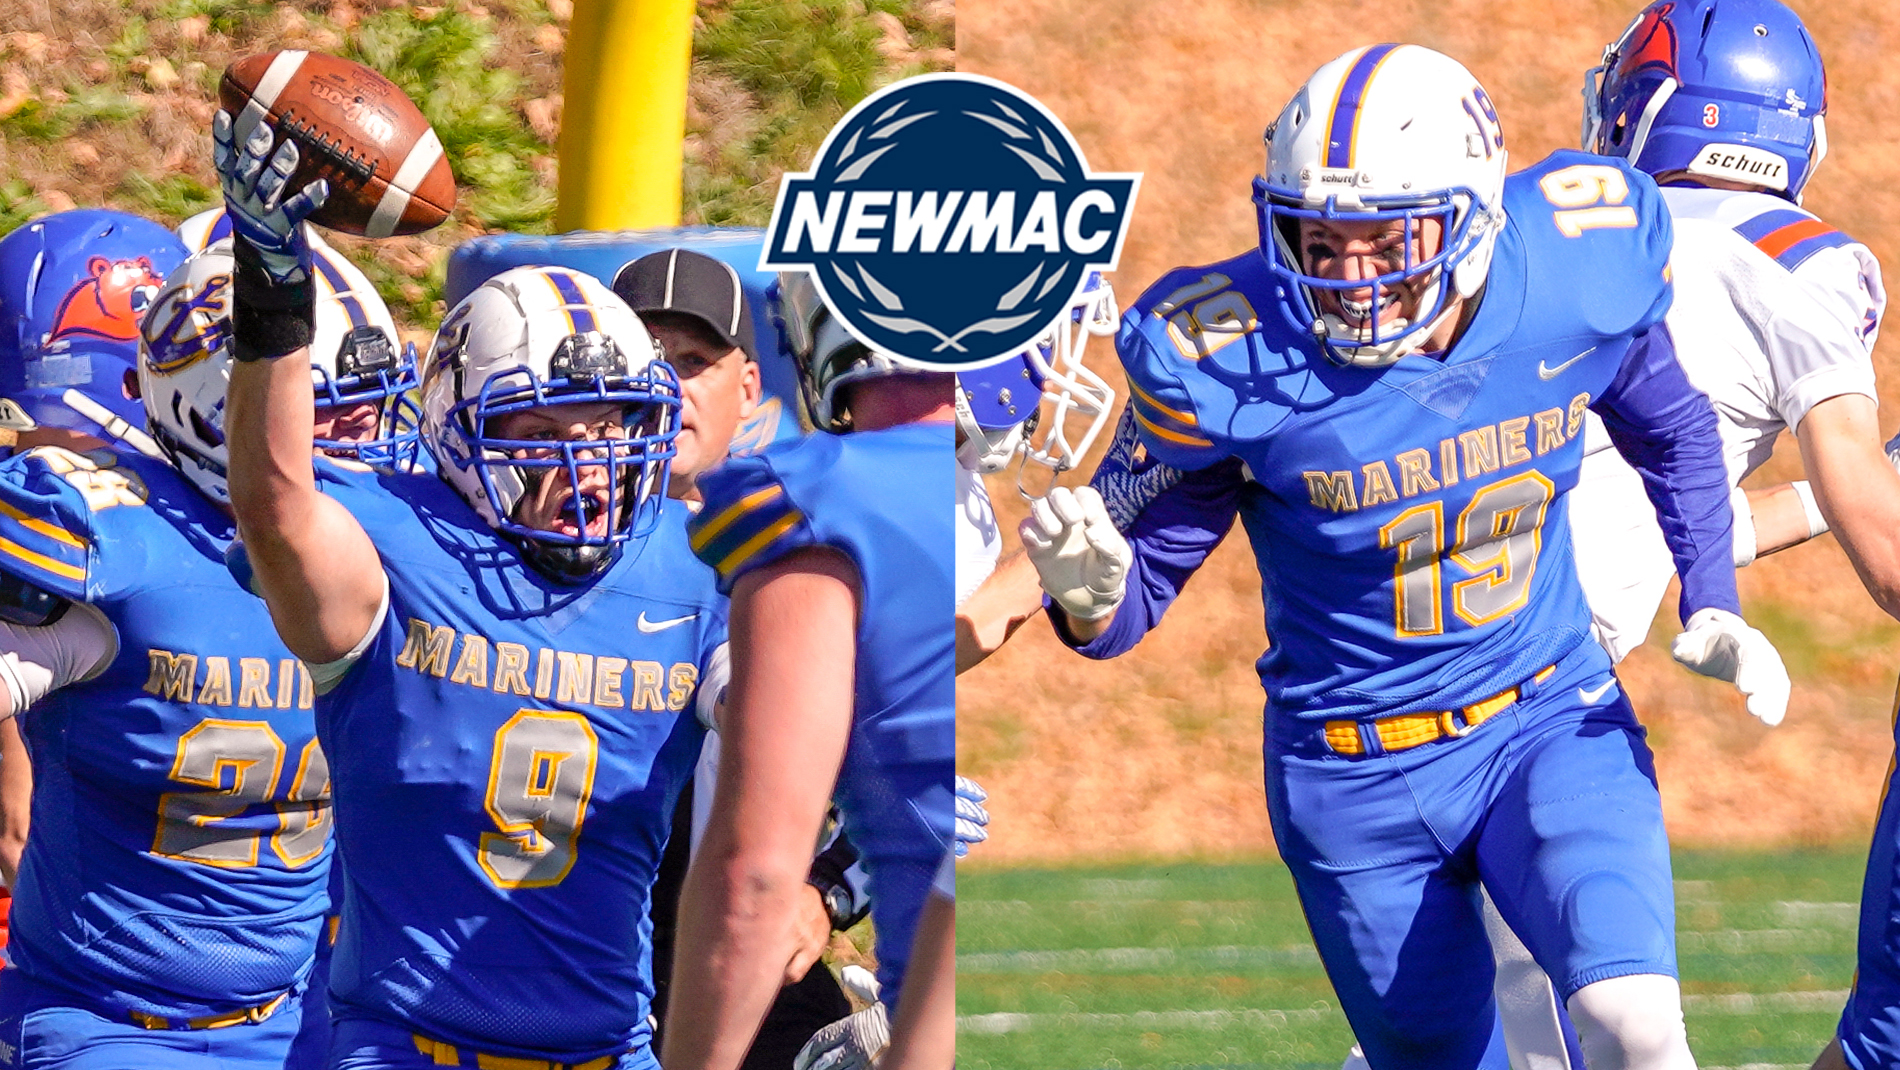 Baron and O'Connell Named to NEWMAC Academic All-Conference Team